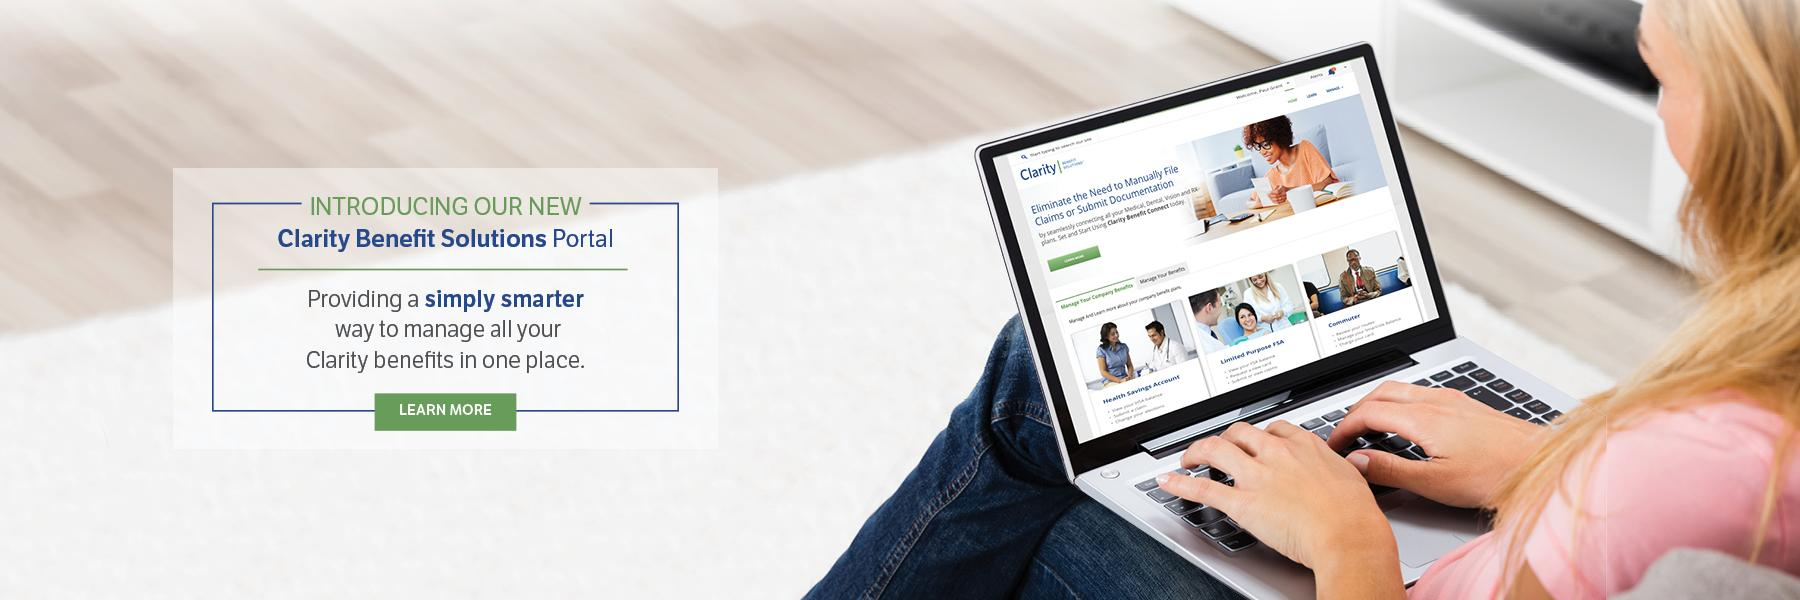 Introducing Our New Clarity Benefit Portal